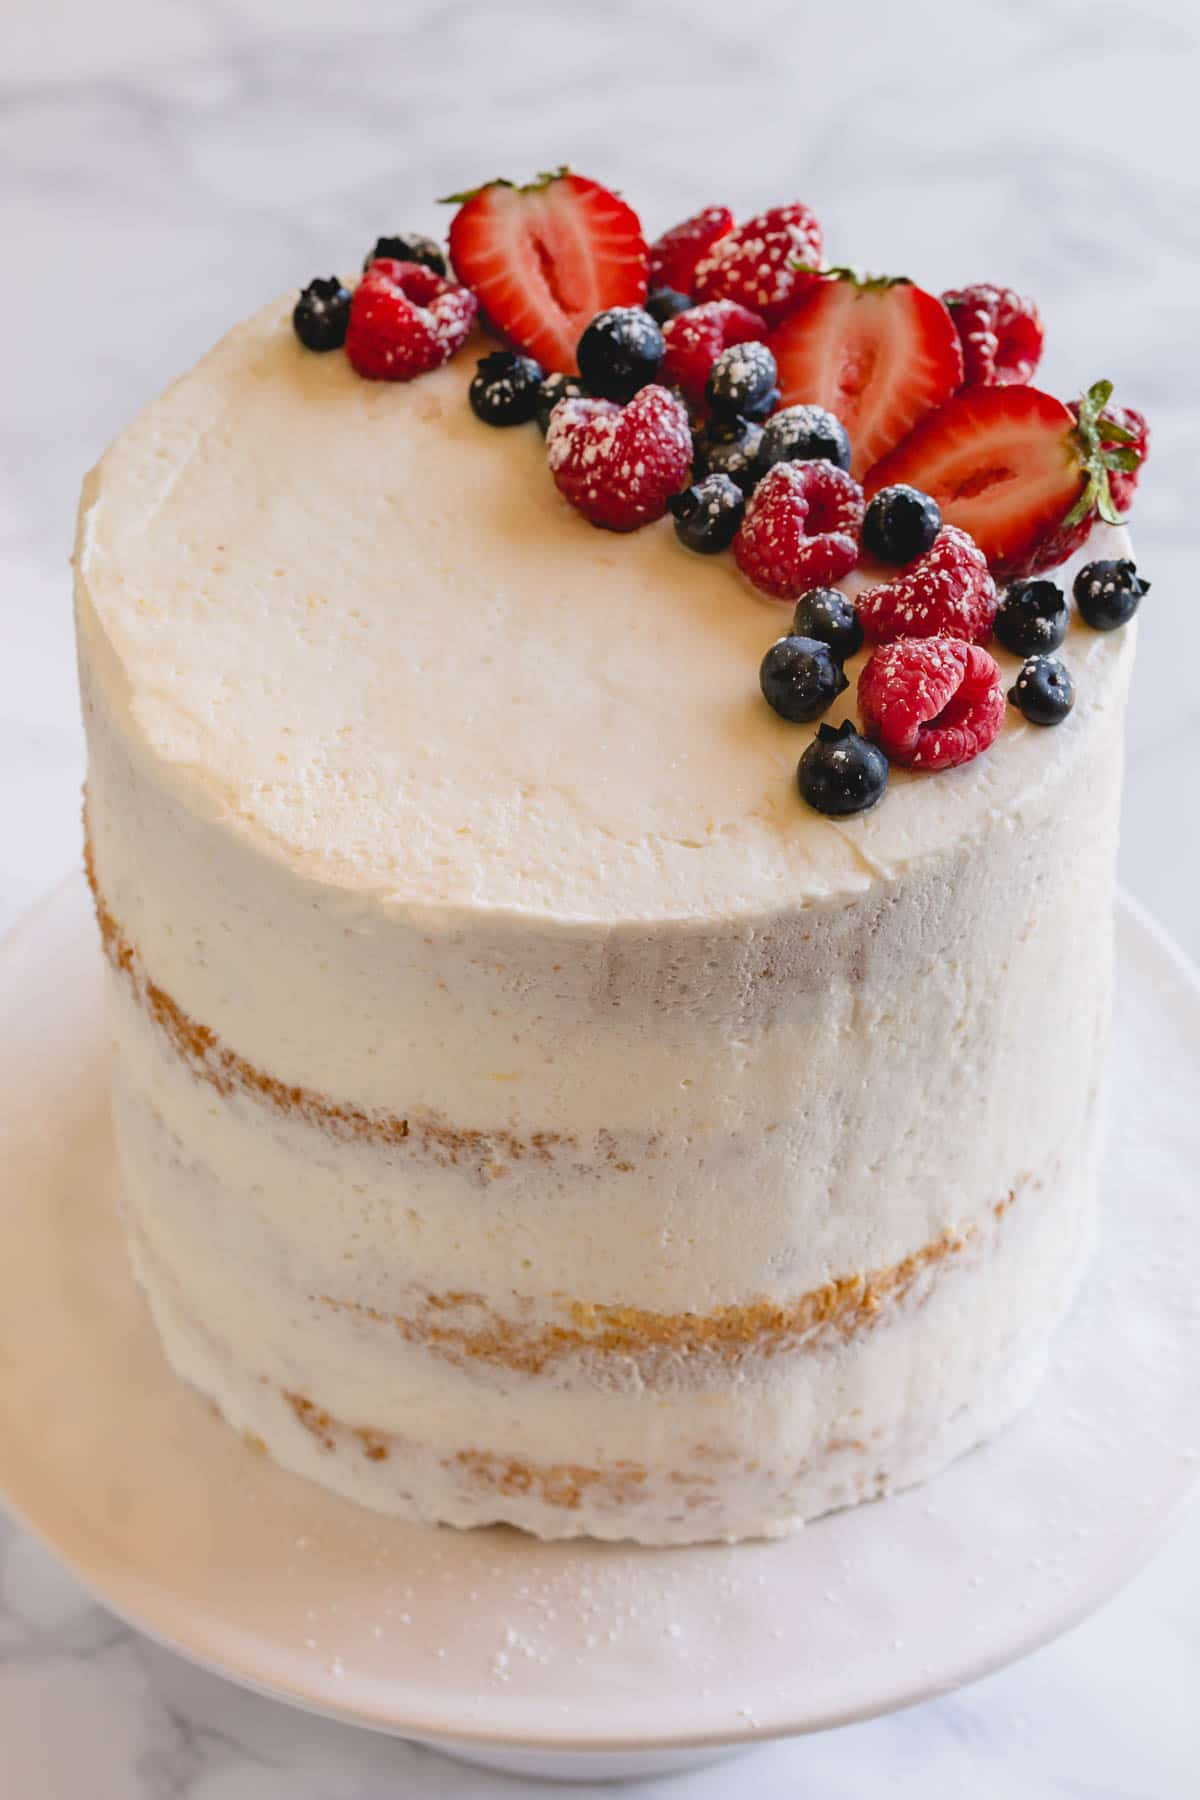 A 4-layer cake topped with fresh berries and with a slice cut out.